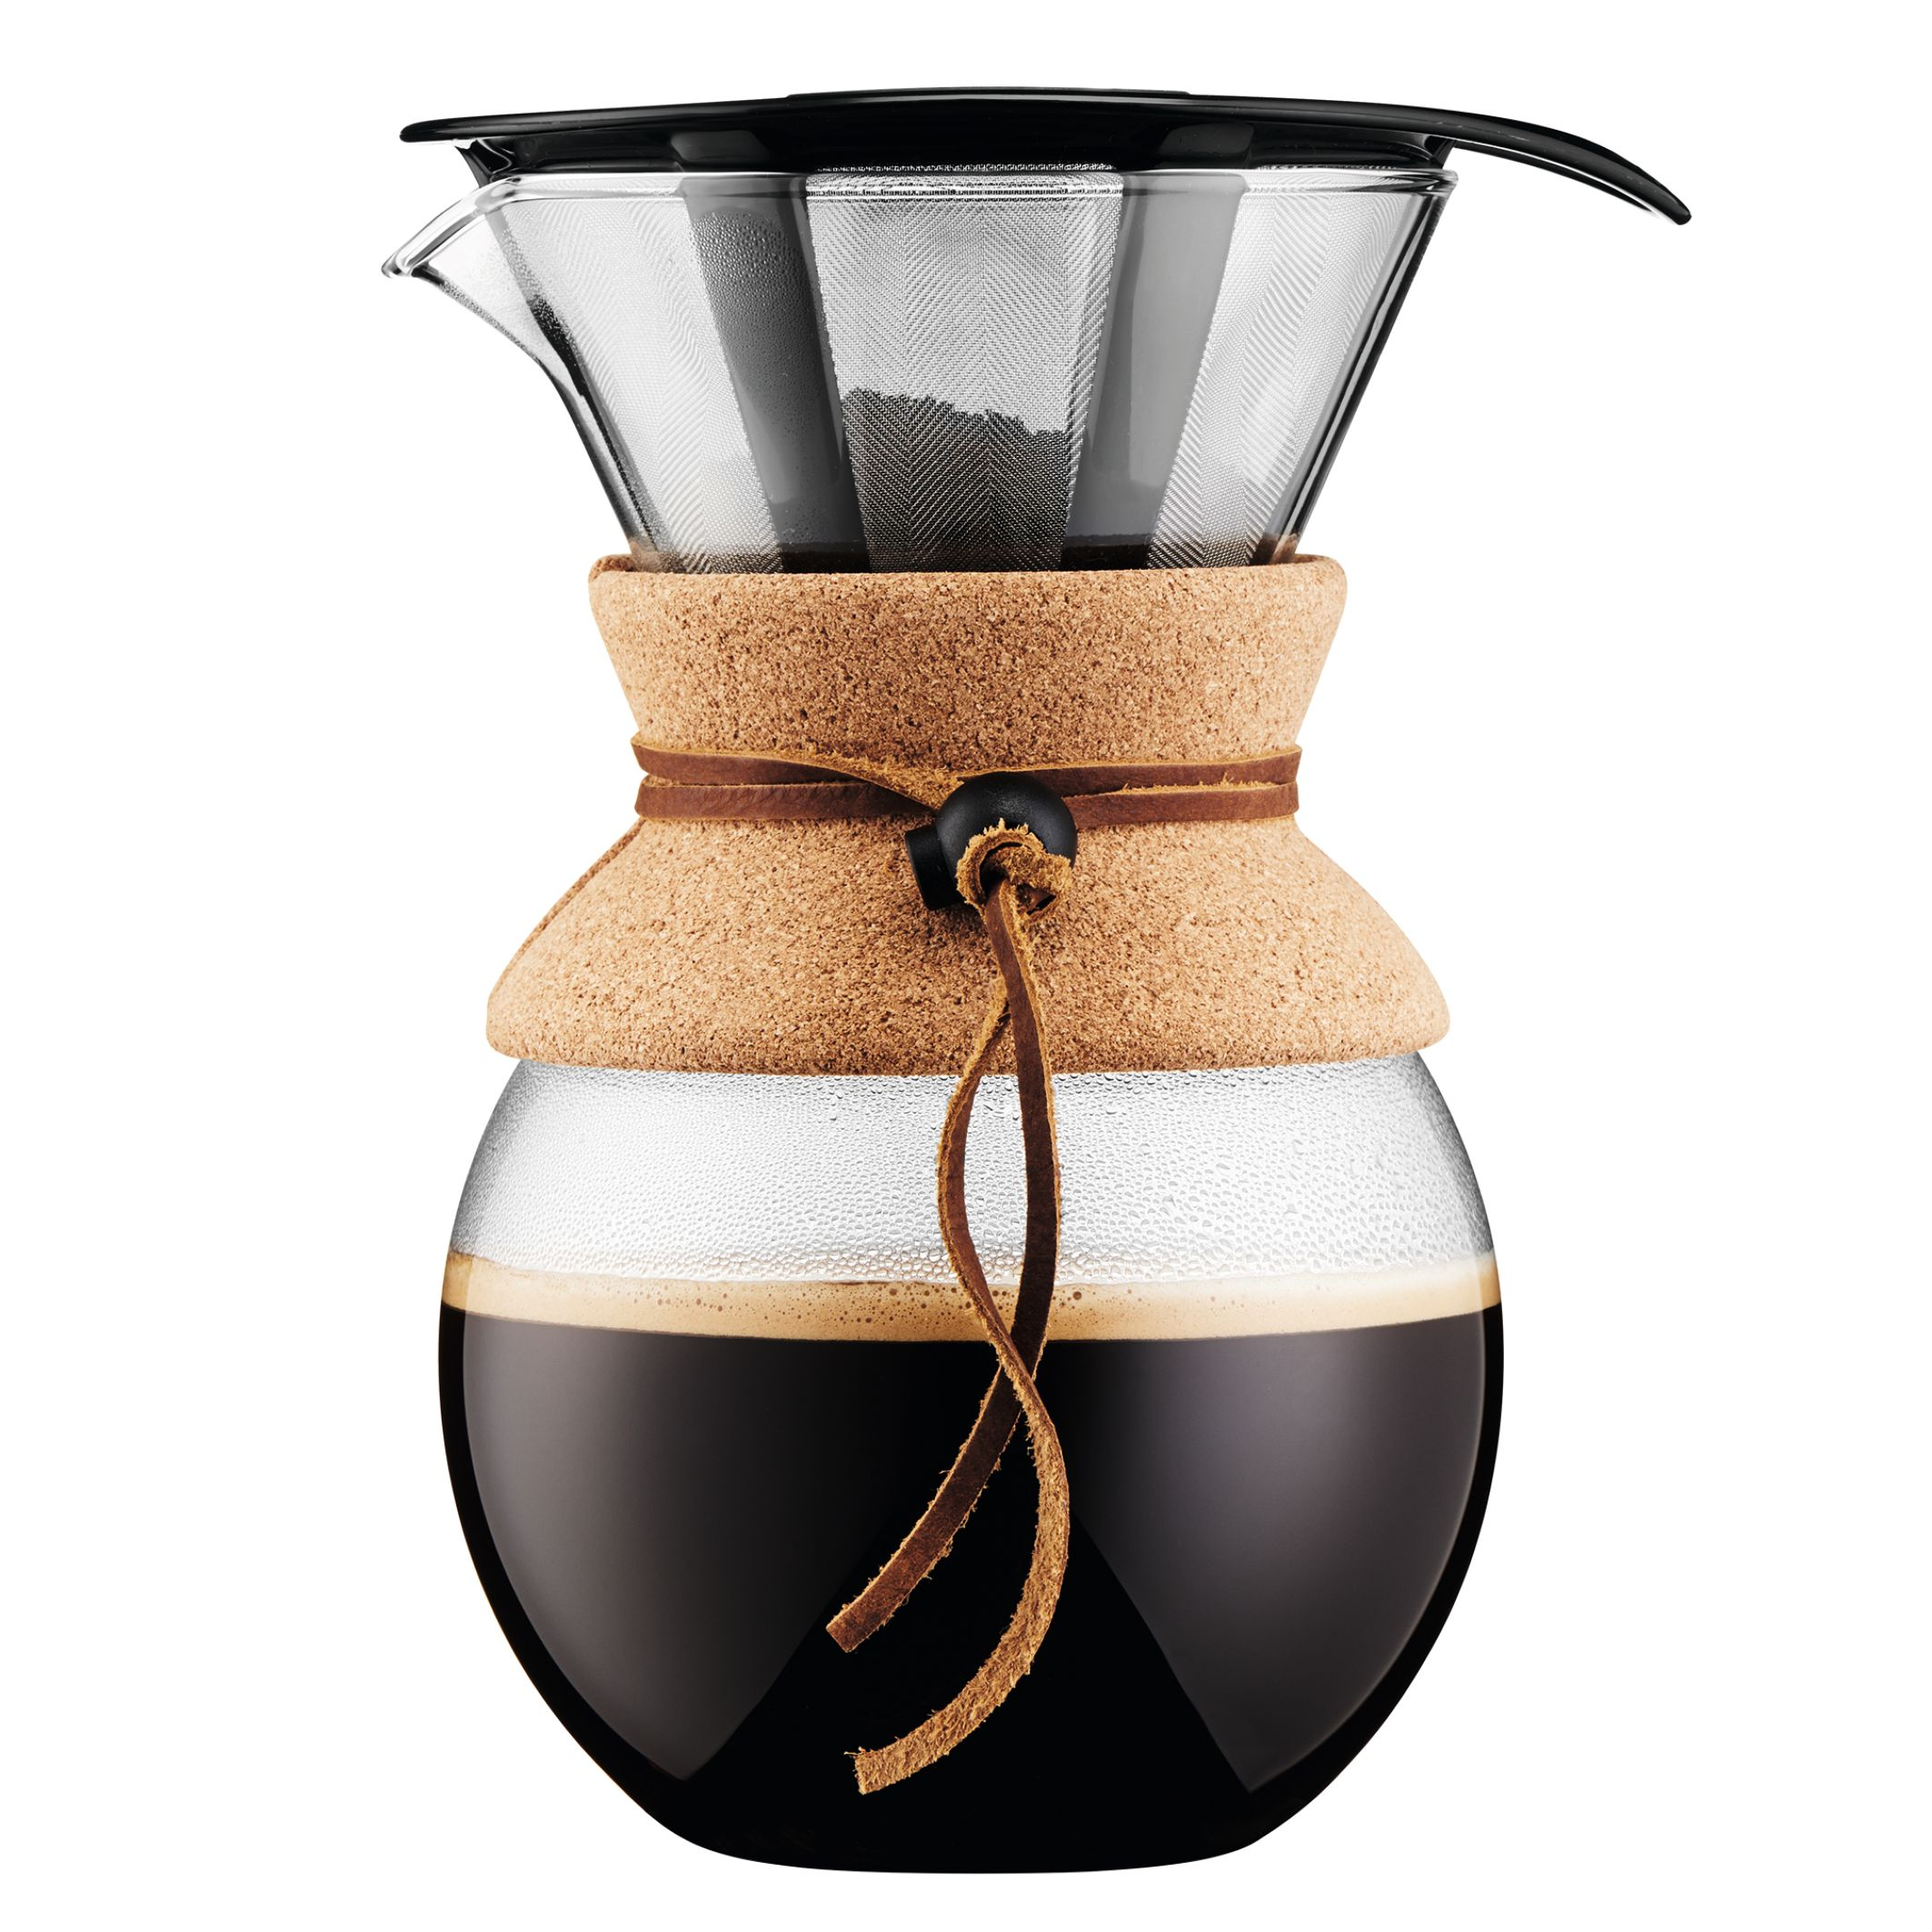 Bodum Pour over Coffee Maker with Permanent Filter, 1 L, 34 Ounce, Black